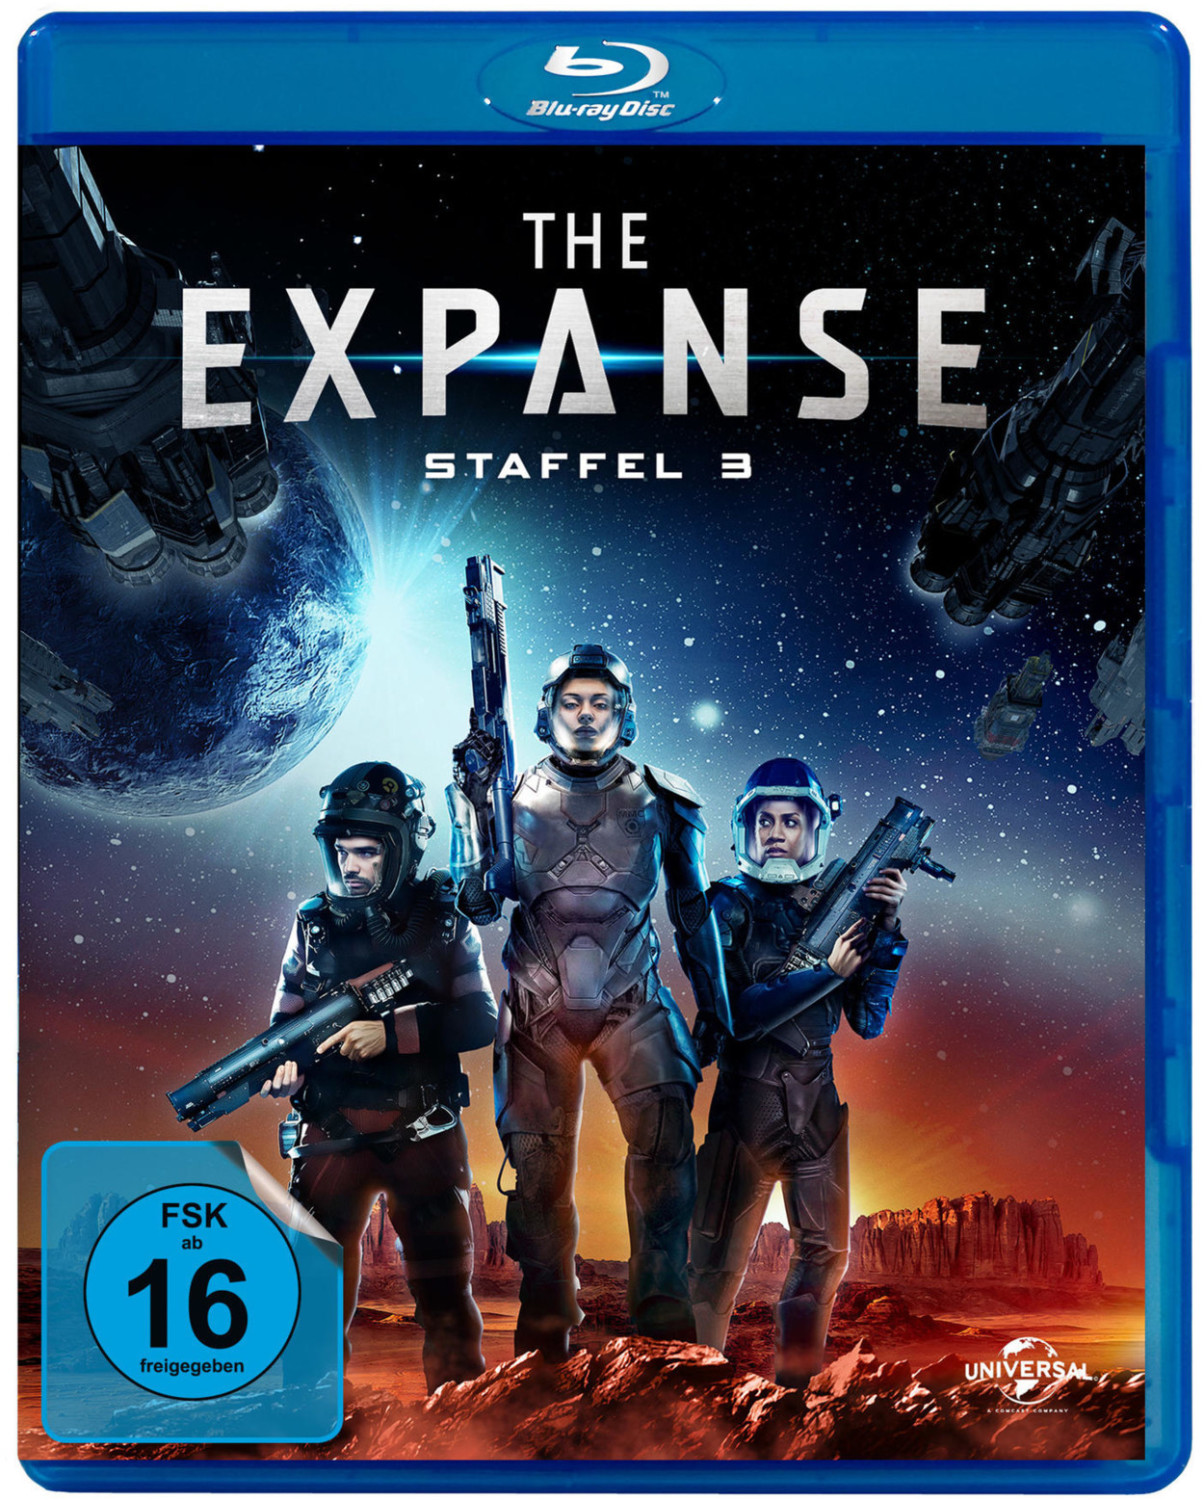 #The Expanse – Staffel 3 [Blu-ray]#